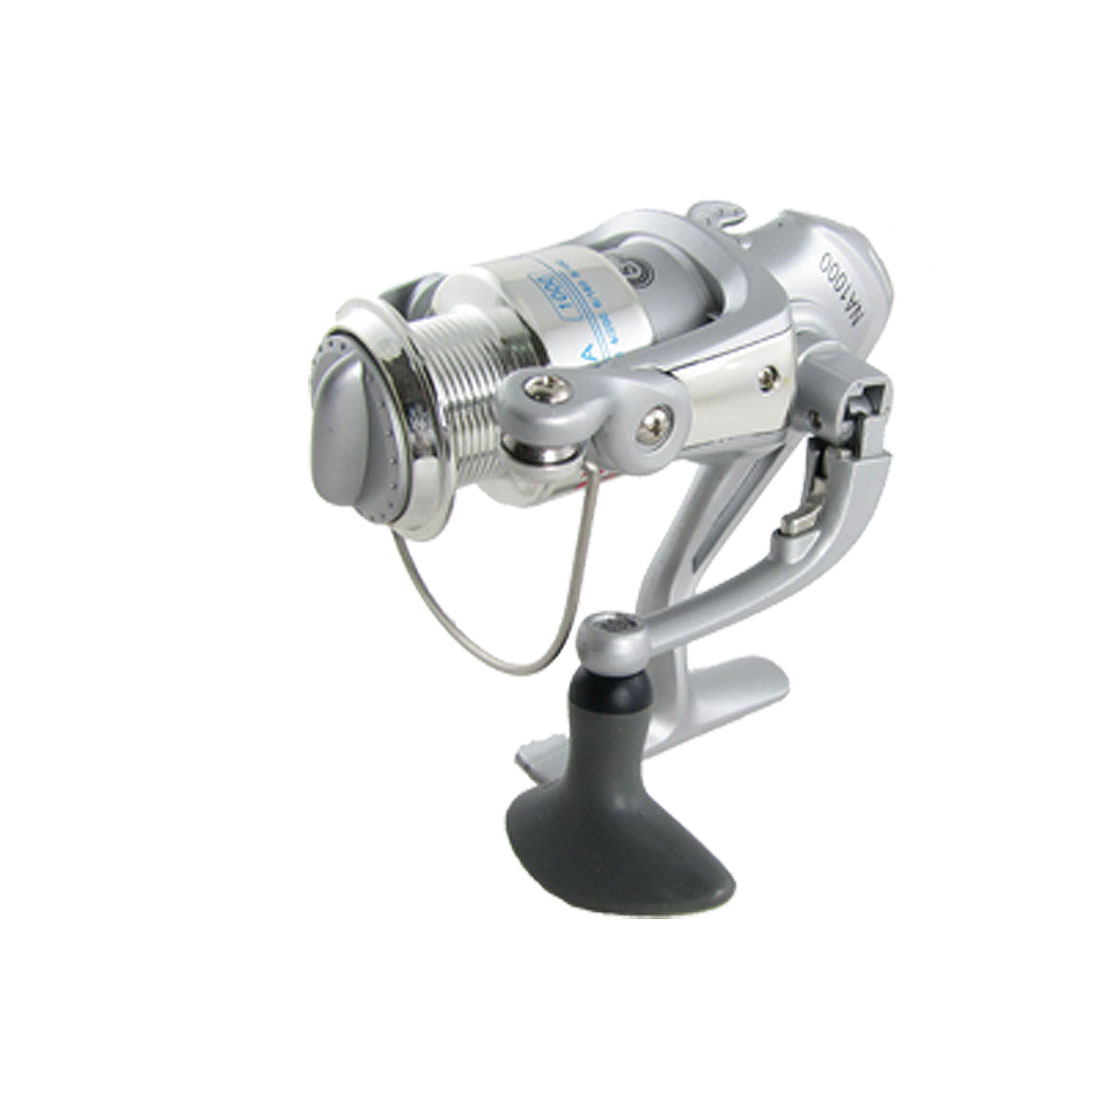 Silver Tone Fishing Spinning Reel Roller Bearing Gear Ratio 5.1:1